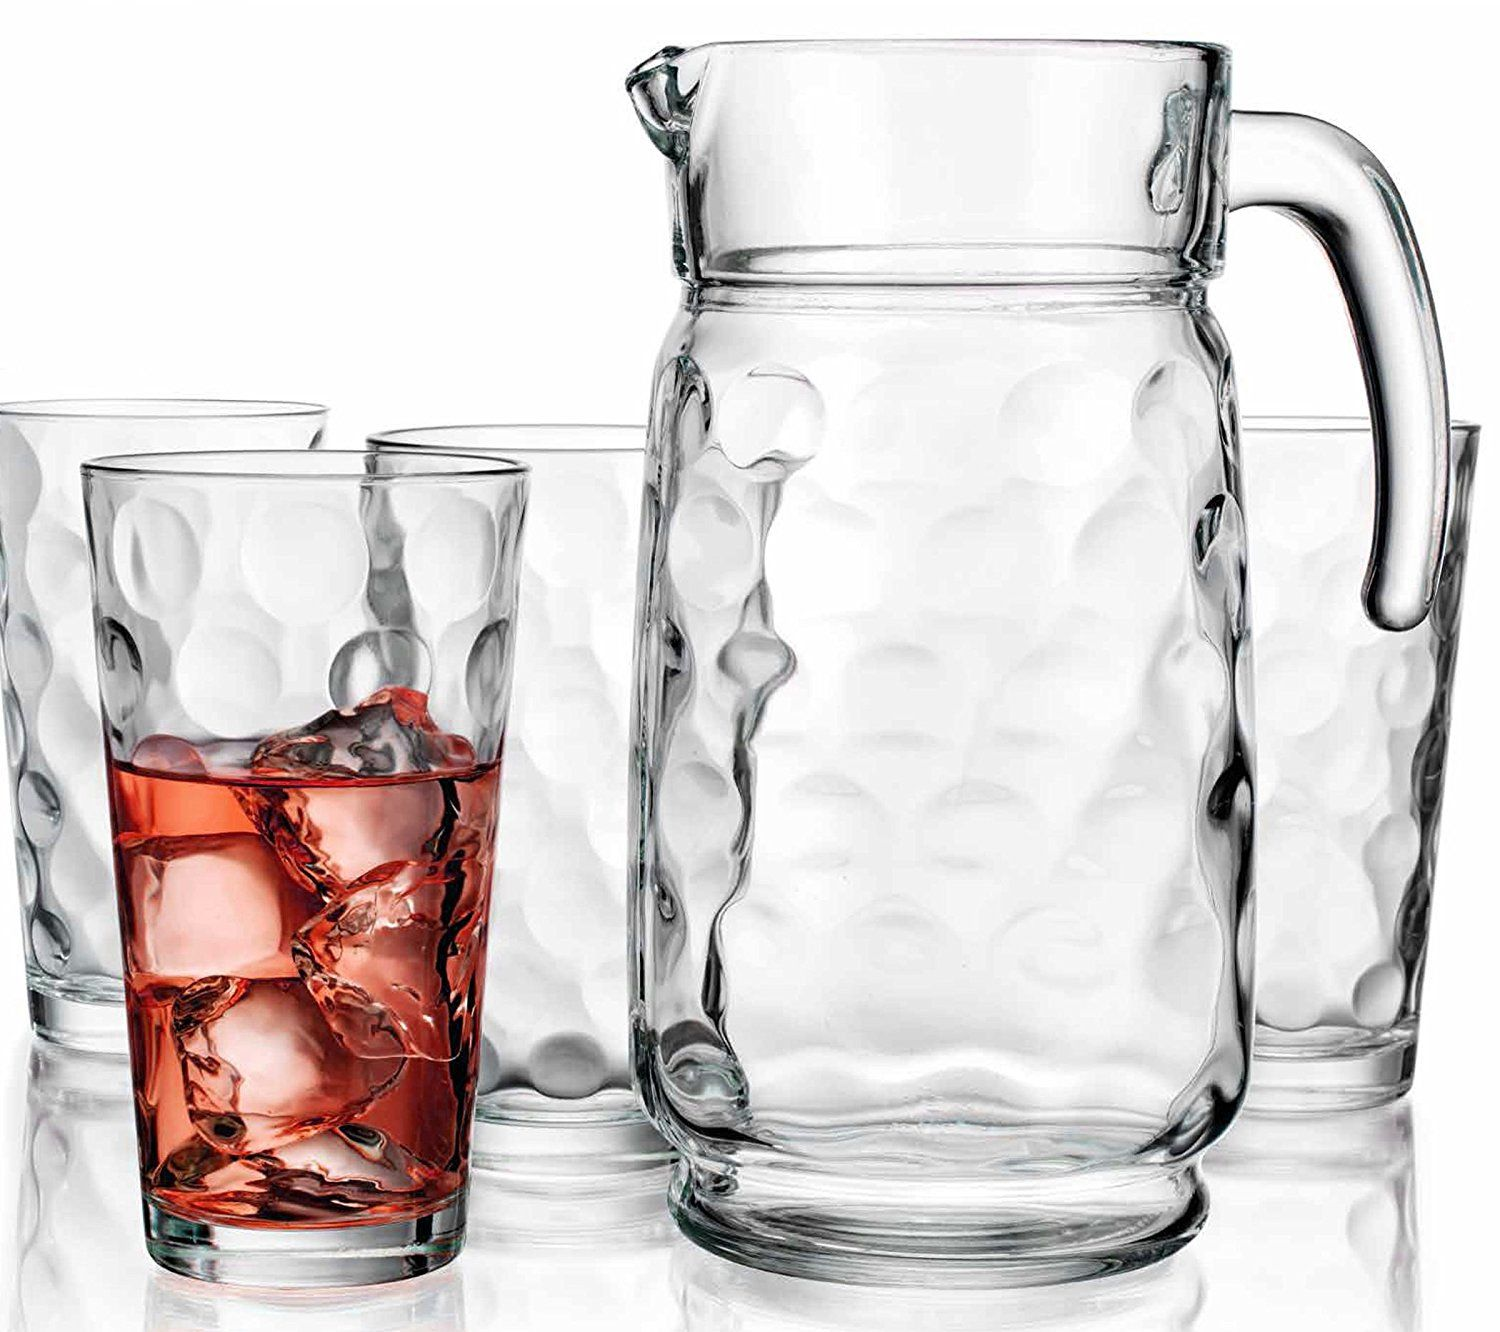 Palais Glassware Cercle Collection | Product photography | Pinterest